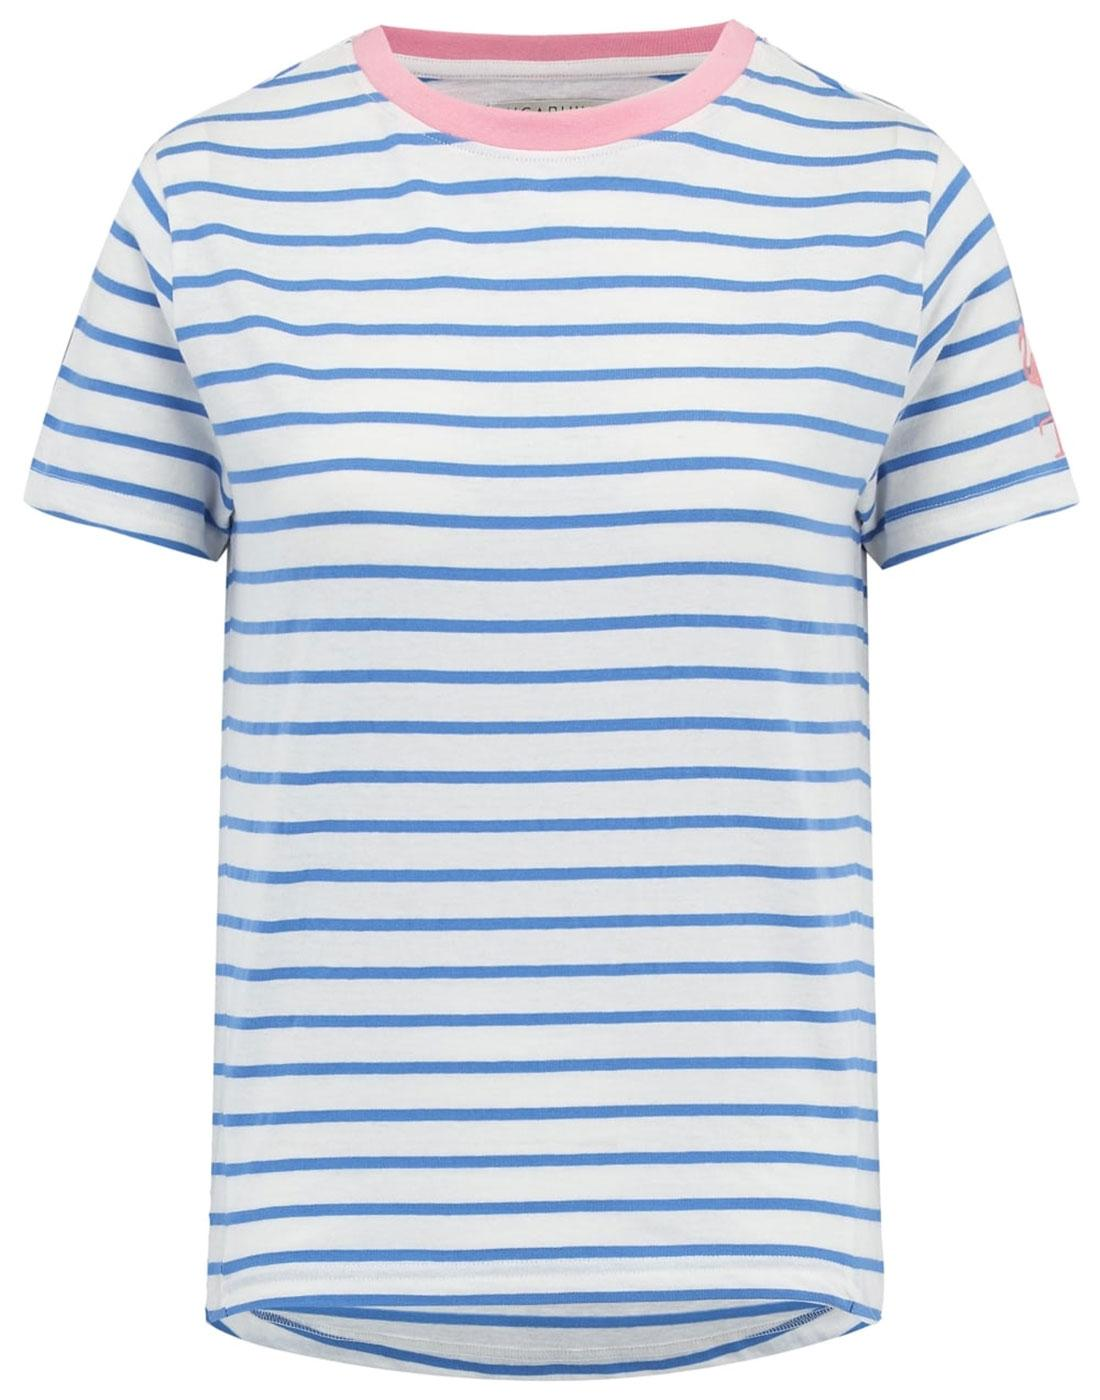 Mimi SUGARHILL BOUTIQUE Retro Flamingo Stripe Tee